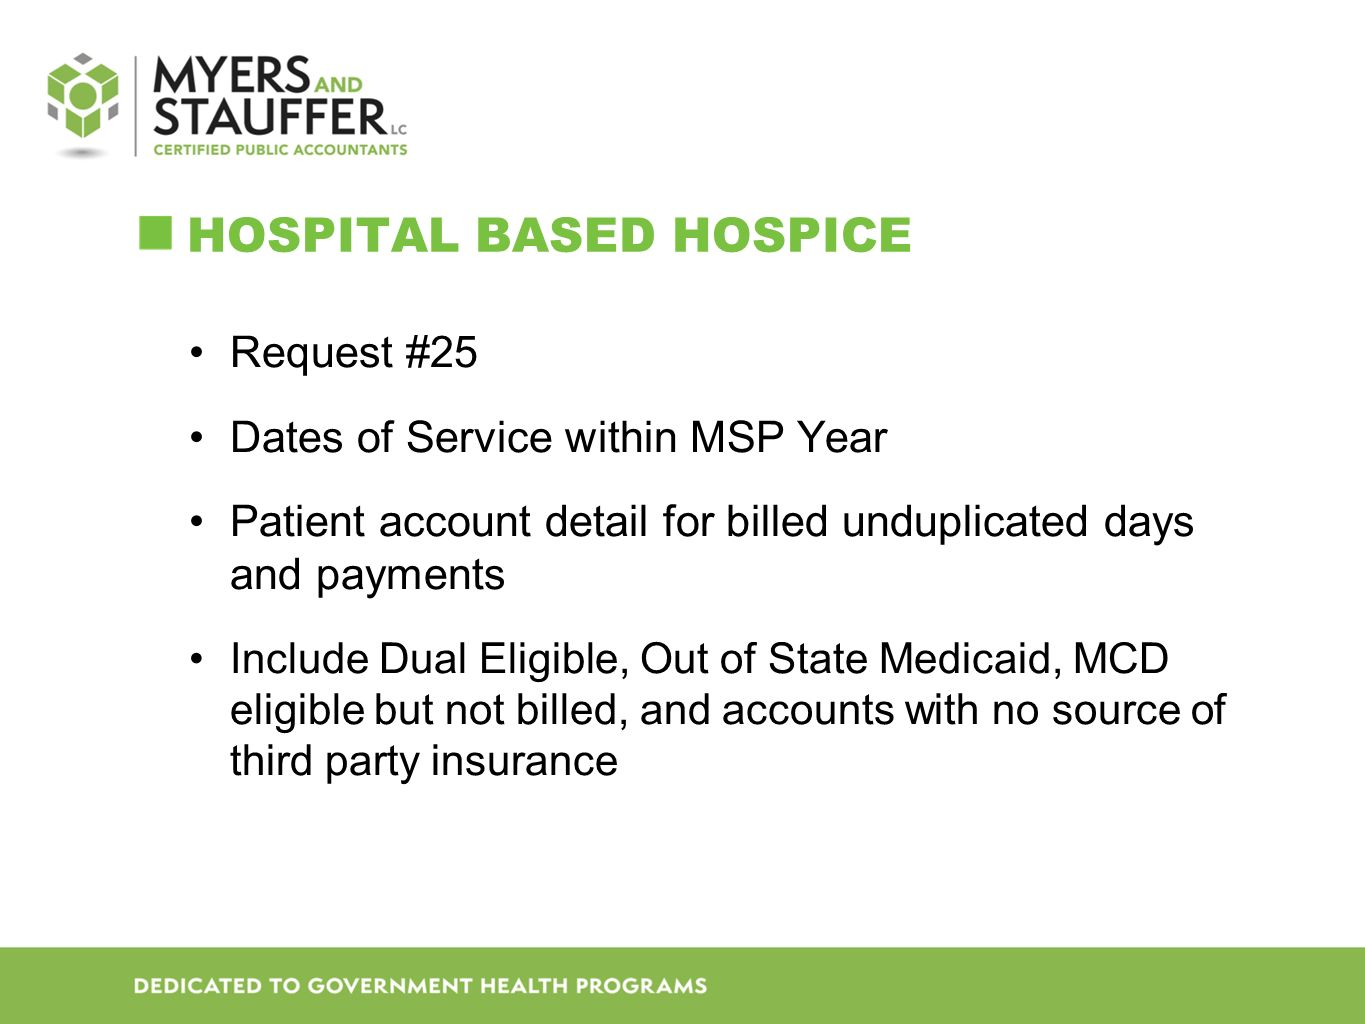 HOSPITAL BASED HOSPICE Request #25 Dates of Service within MSP Year Patient account detail for billed unduplicated days and payments Include Dual Eligible, Out of State Medicaid, MCD eligible but not billed, and accounts with no source of third party insurance